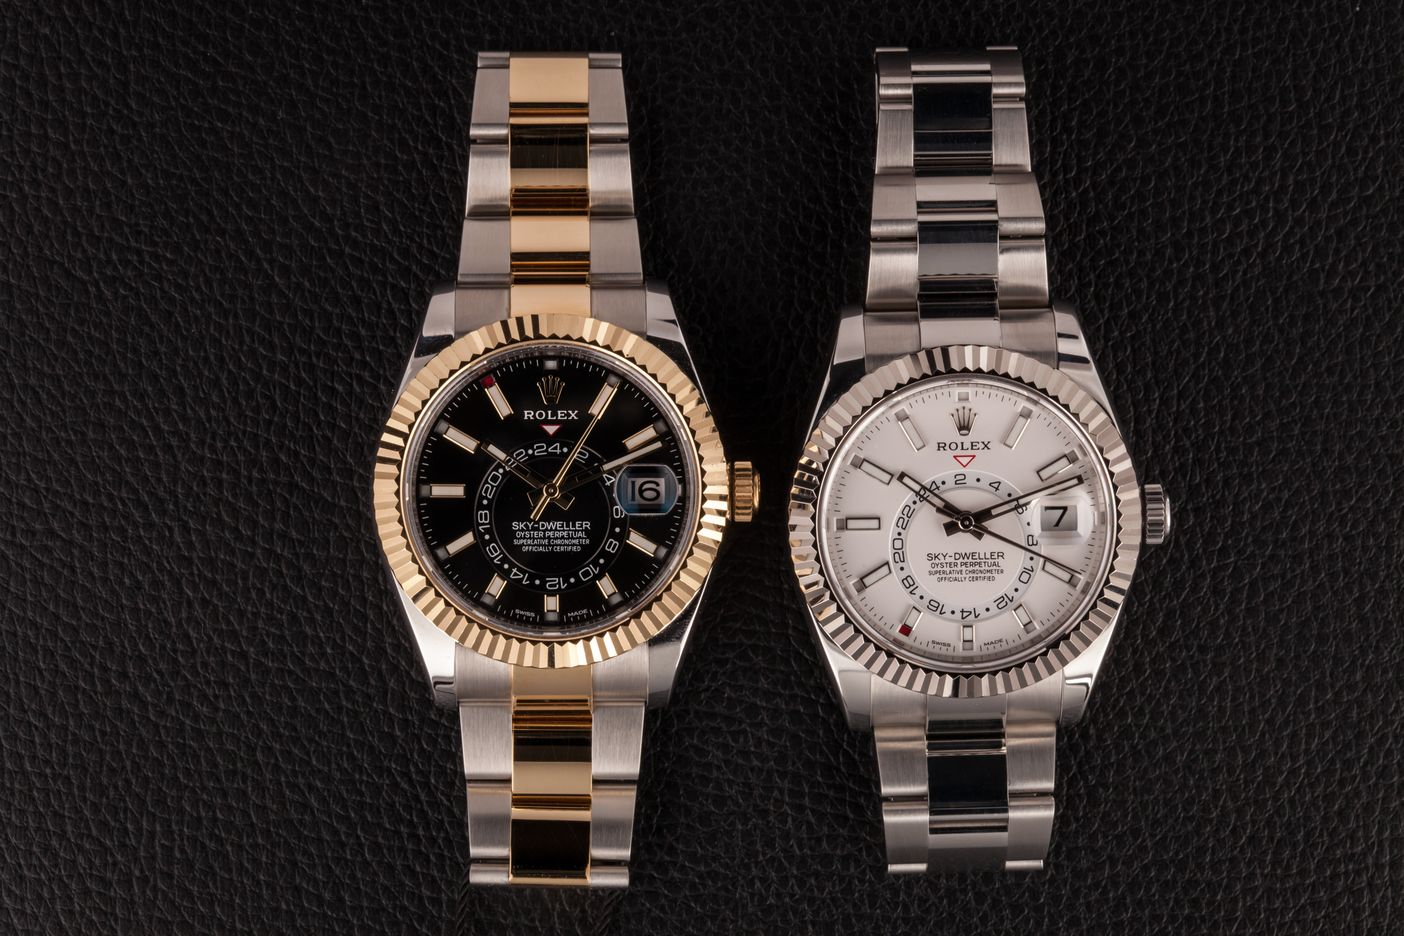 Rolex Sky-Dweller Two-Tone Rolesor stainless steel and gold